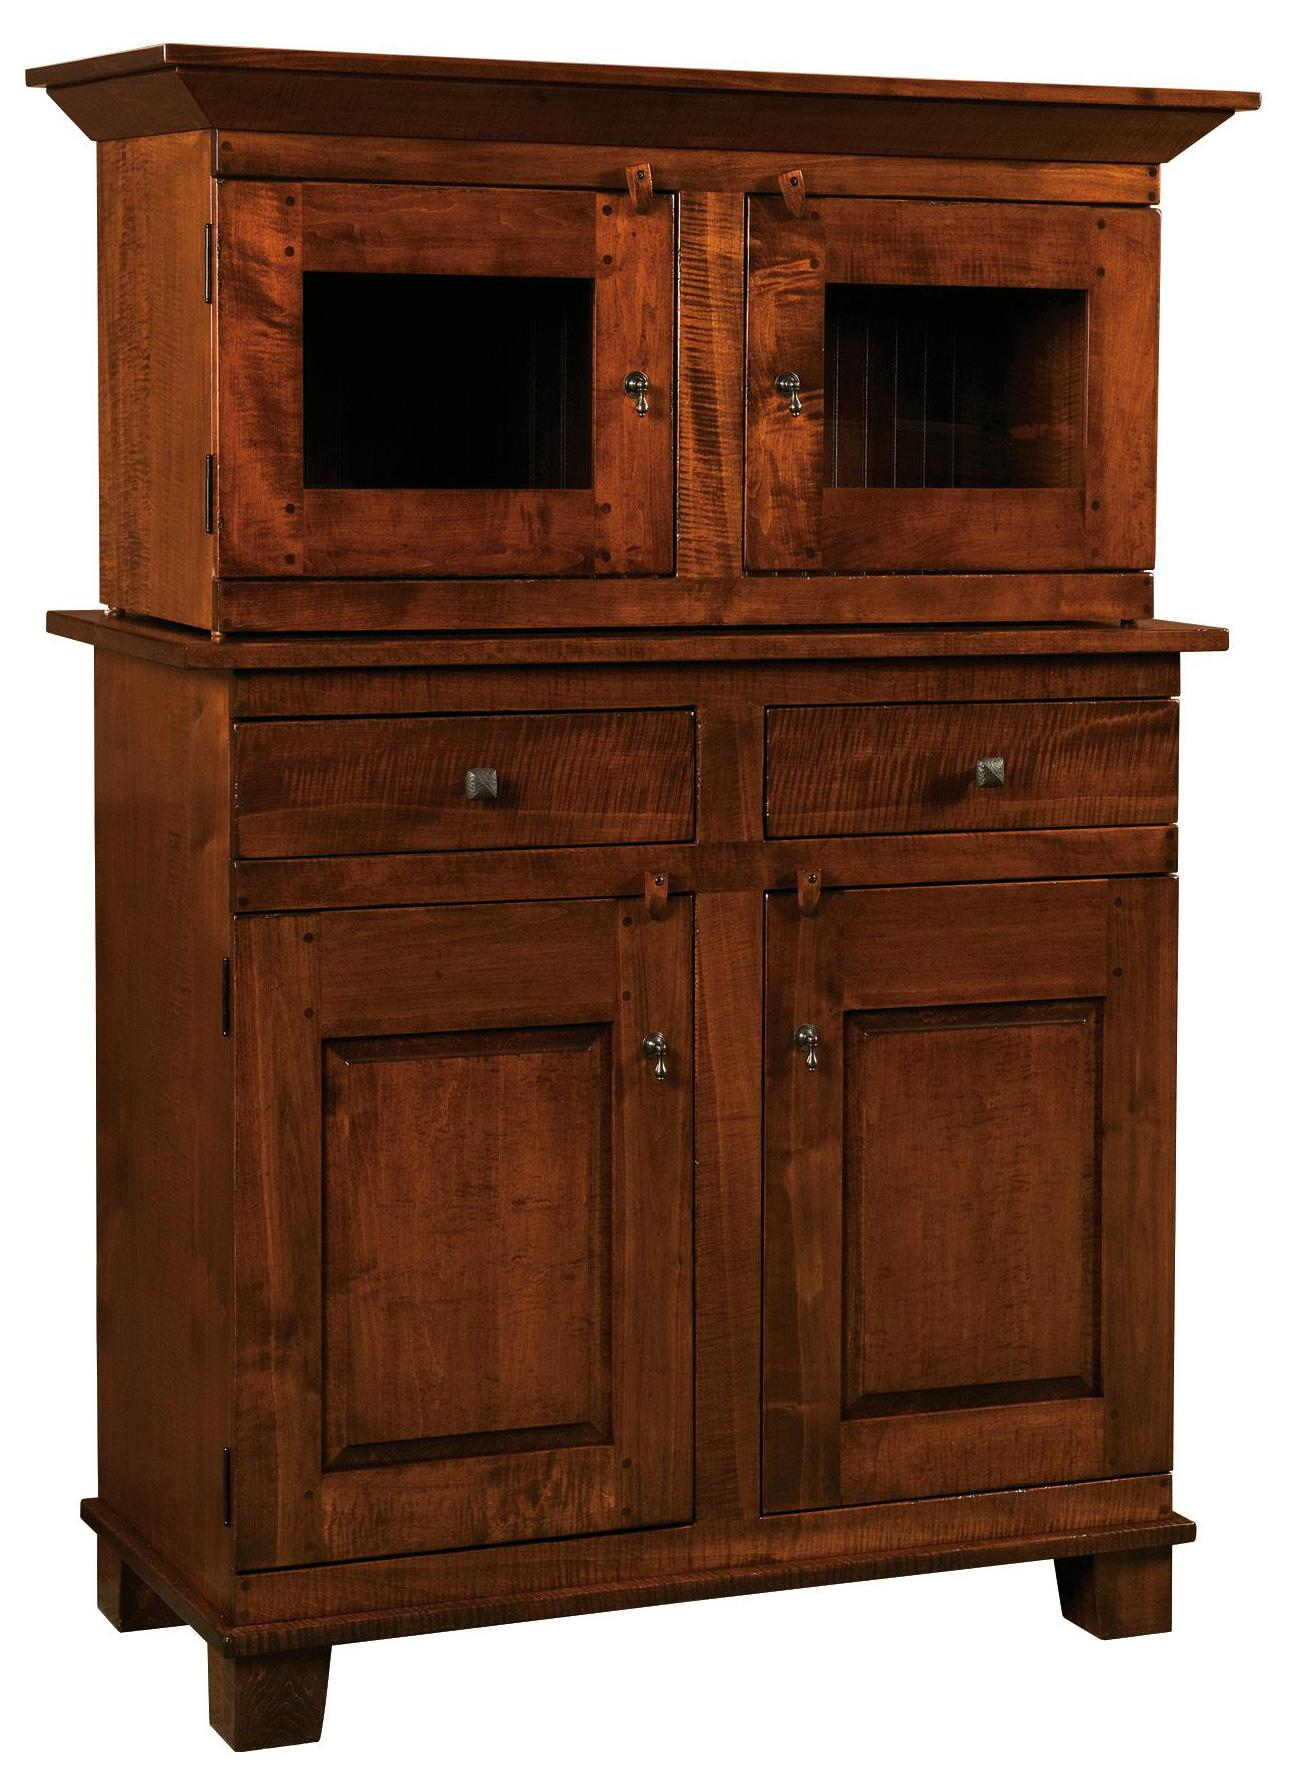 Webster Webster Amish Buffet & Hutch by Indiana Amish at Walker's Furniture